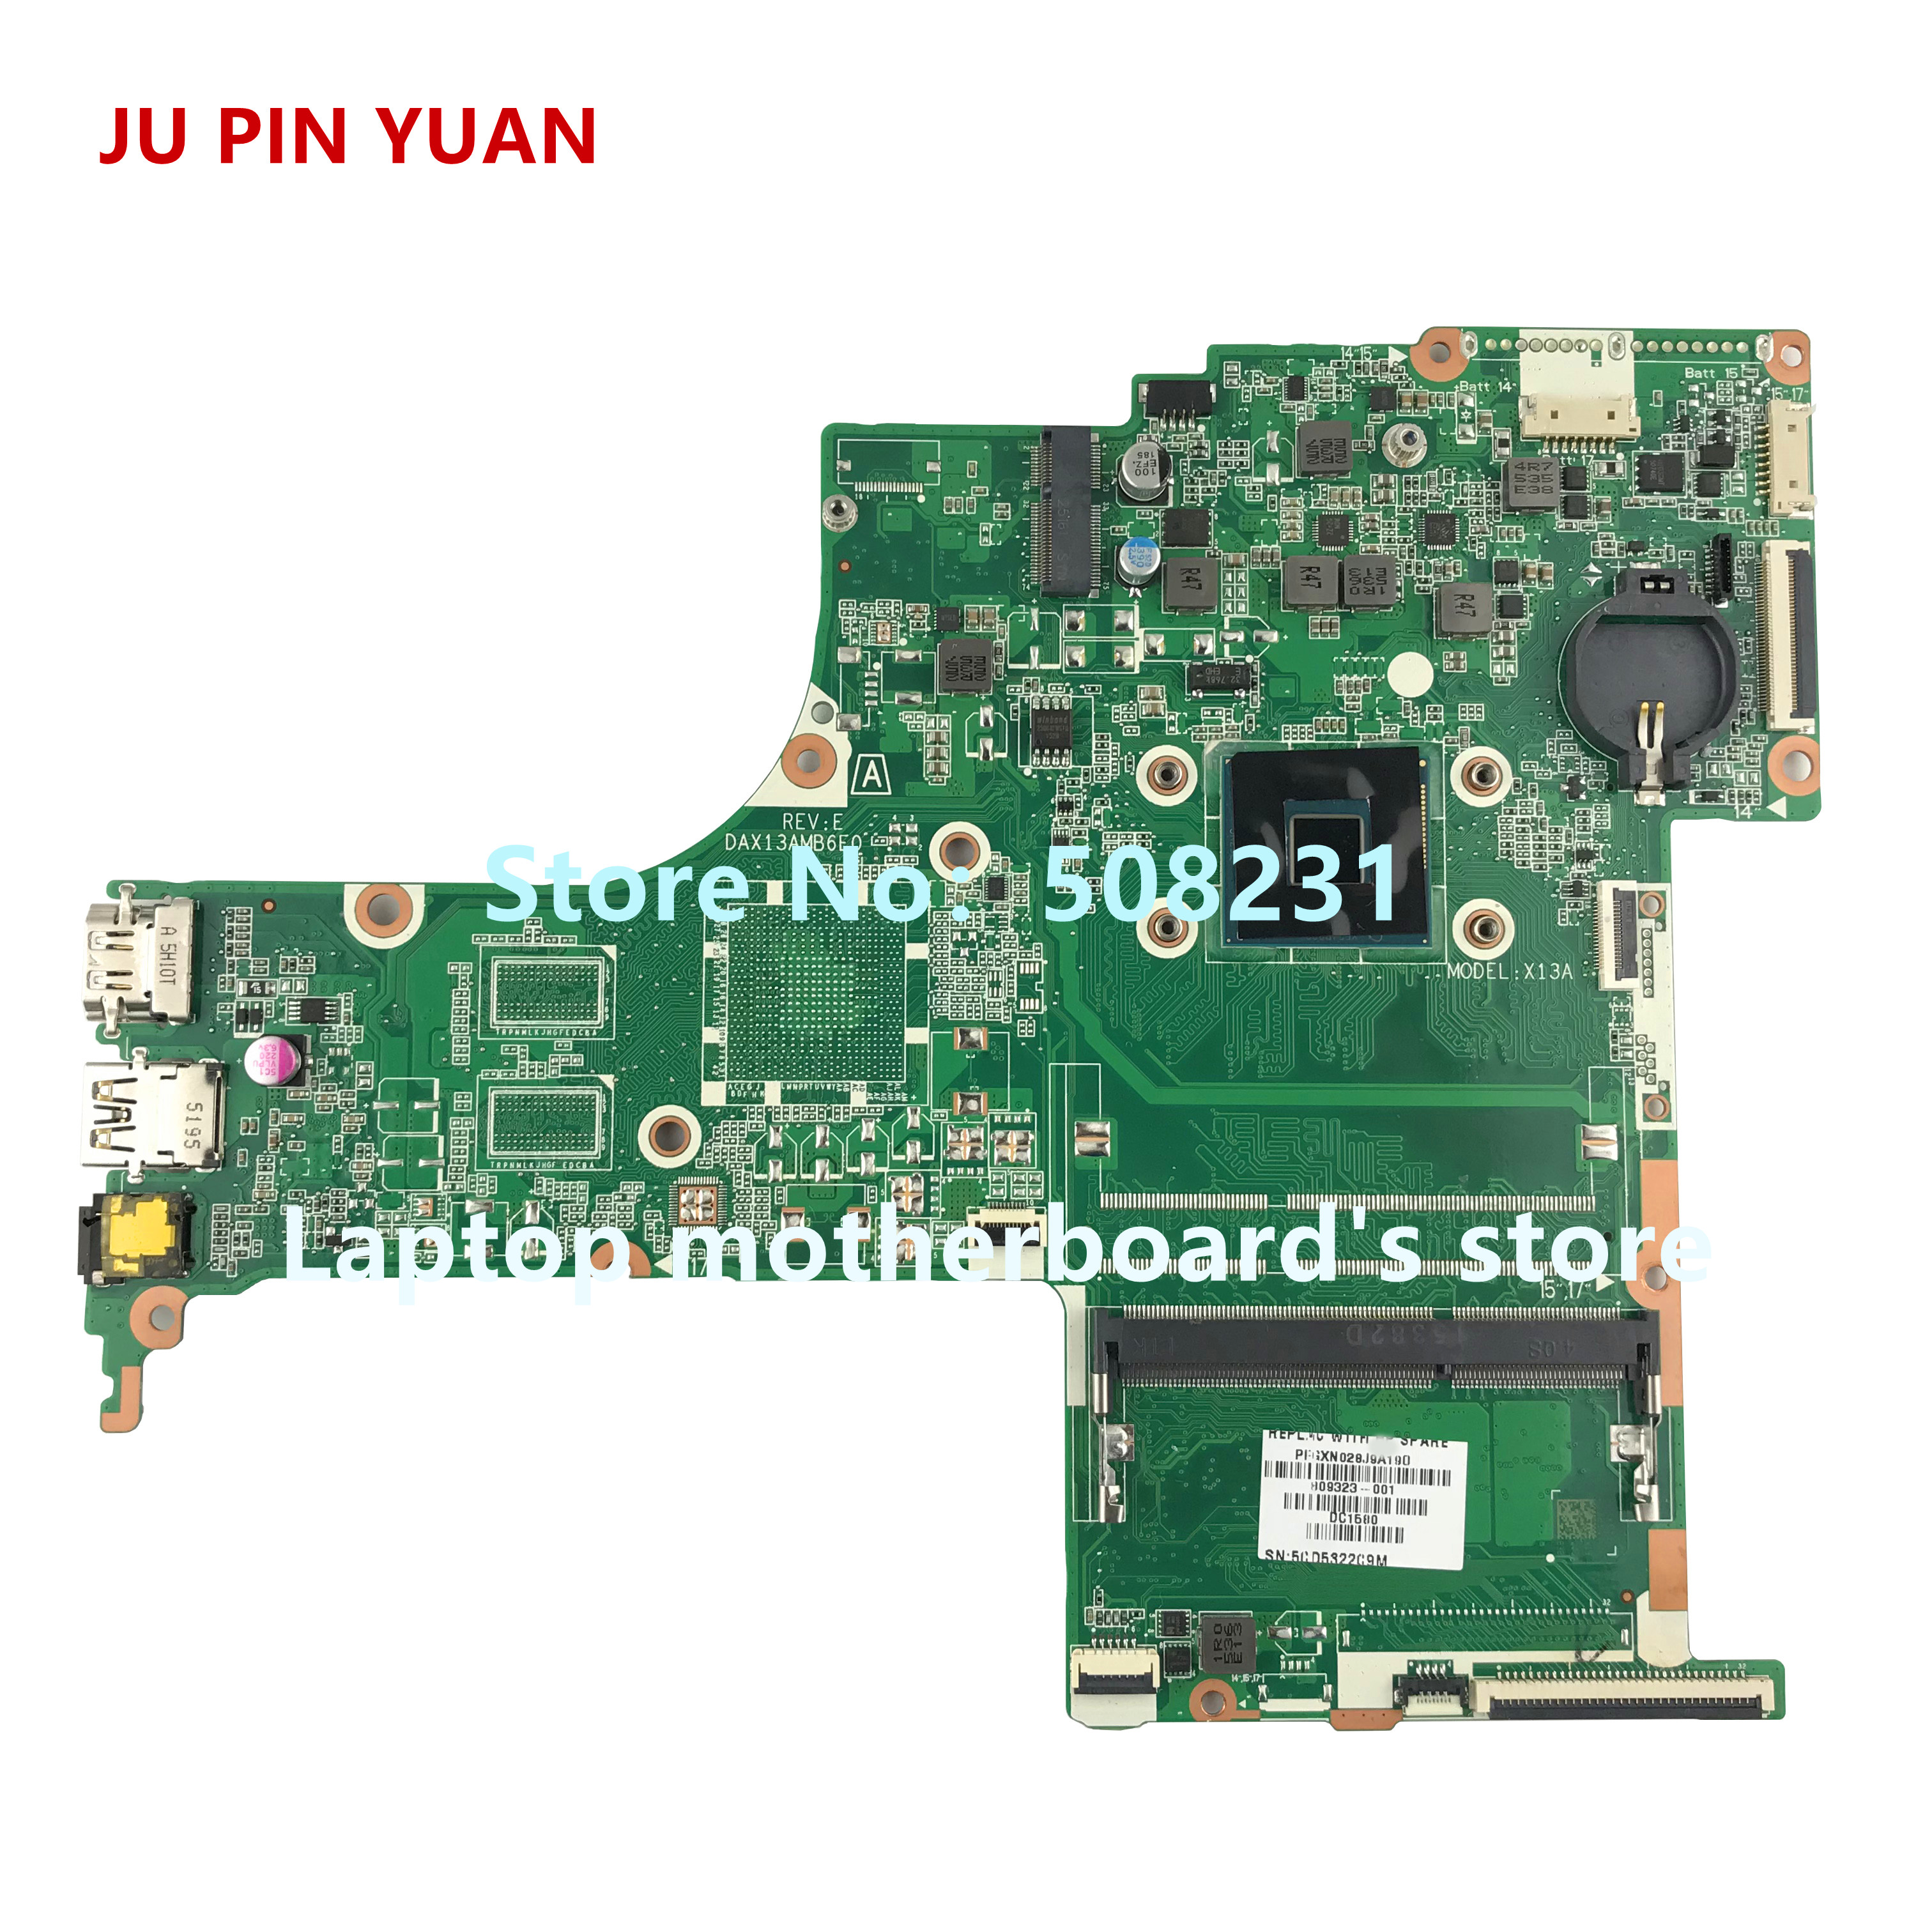 JU PIN YUAN 809323-501 809323-001 DAX13AMB6E0 X13A for HP PAVILION NOTEBOOK 17-G laptop motherboard with N3700 fully TestedJU PIN YUAN 809323-501 809323-001 DAX13AMB6E0 X13A for HP PAVILION NOTEBOOK 17-G laptop motherboard with N3700 fully Tested